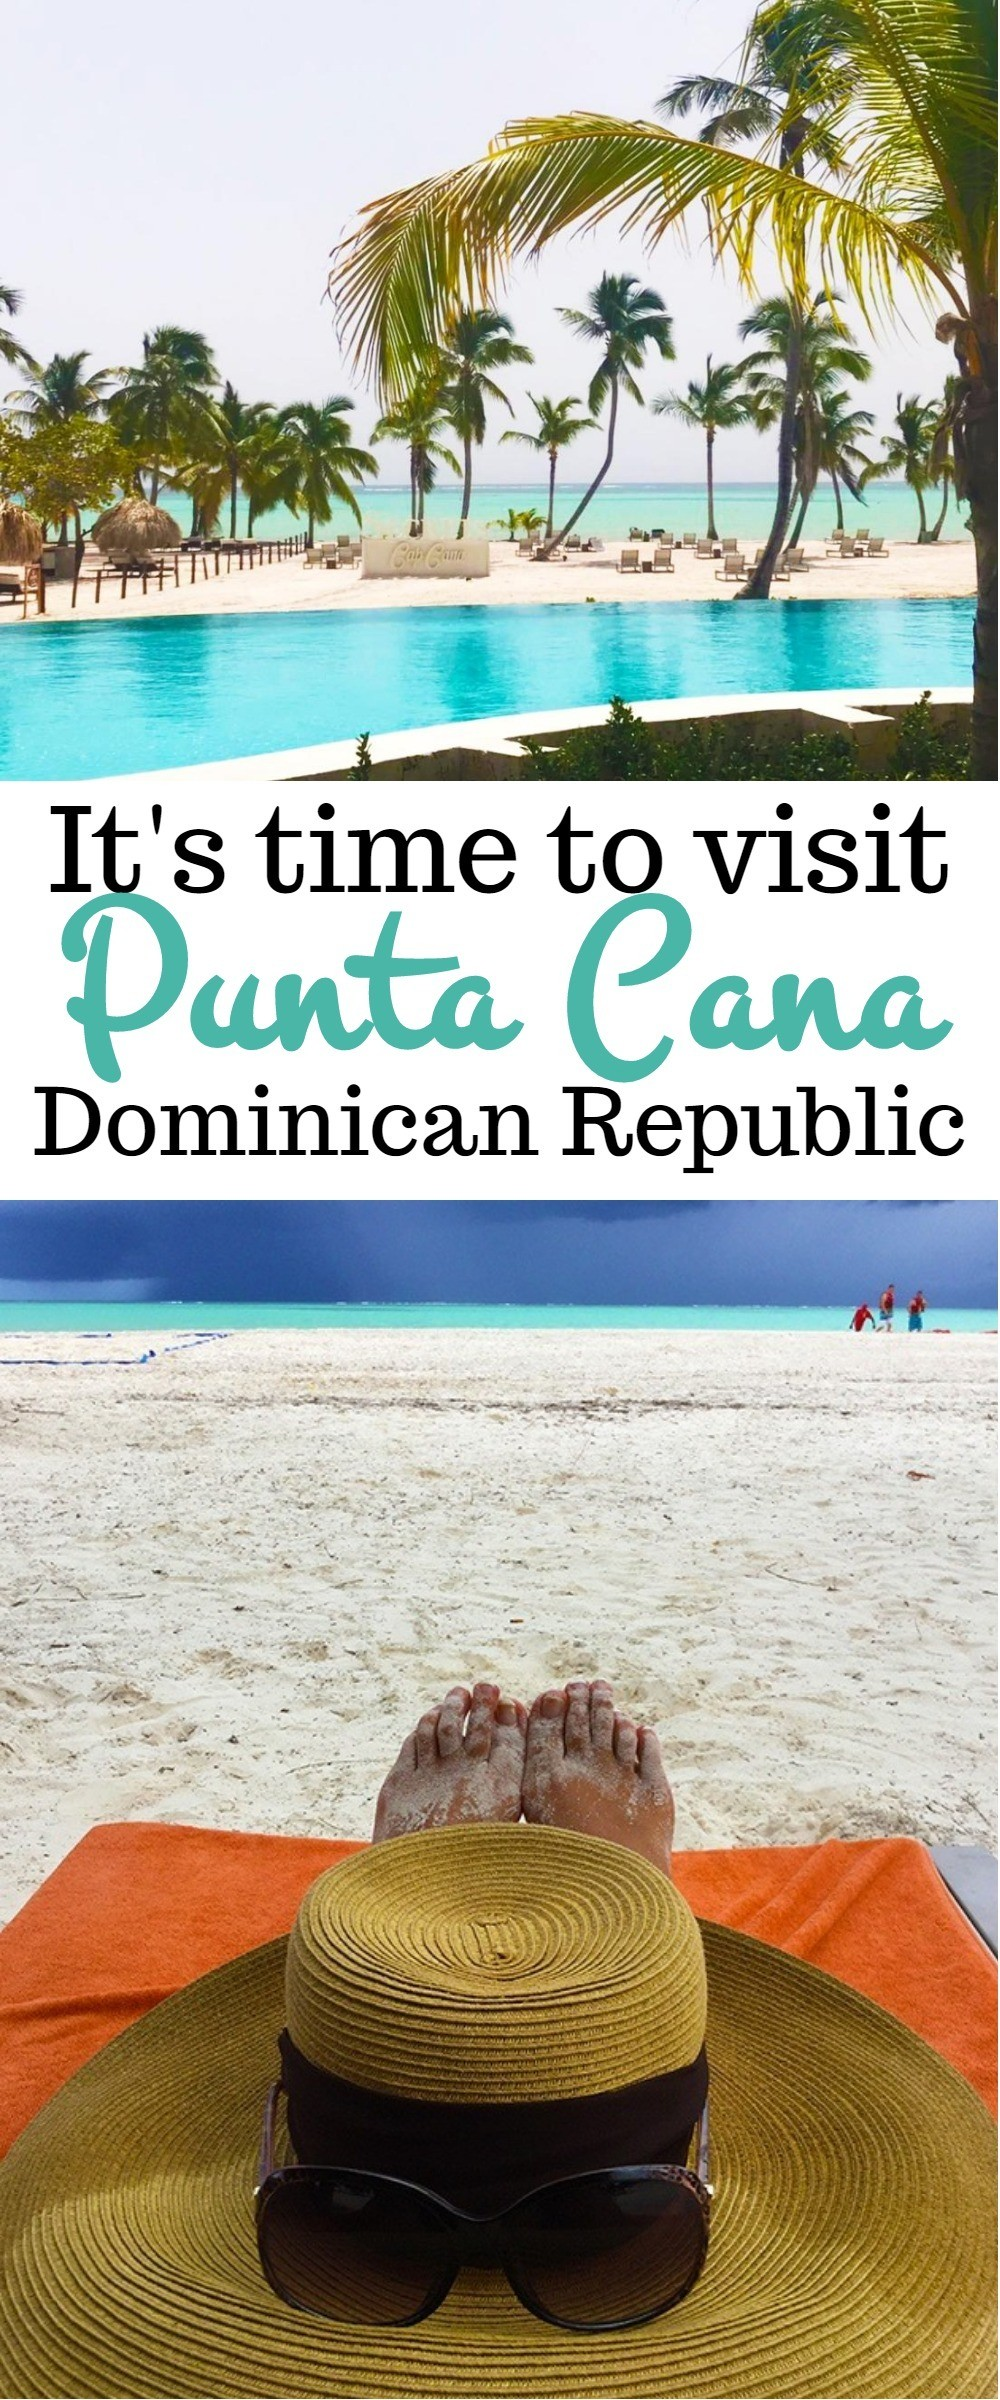 Its Time To Visit Punta Cana Dominican Republic- Your Caribbean Vacation Awaits